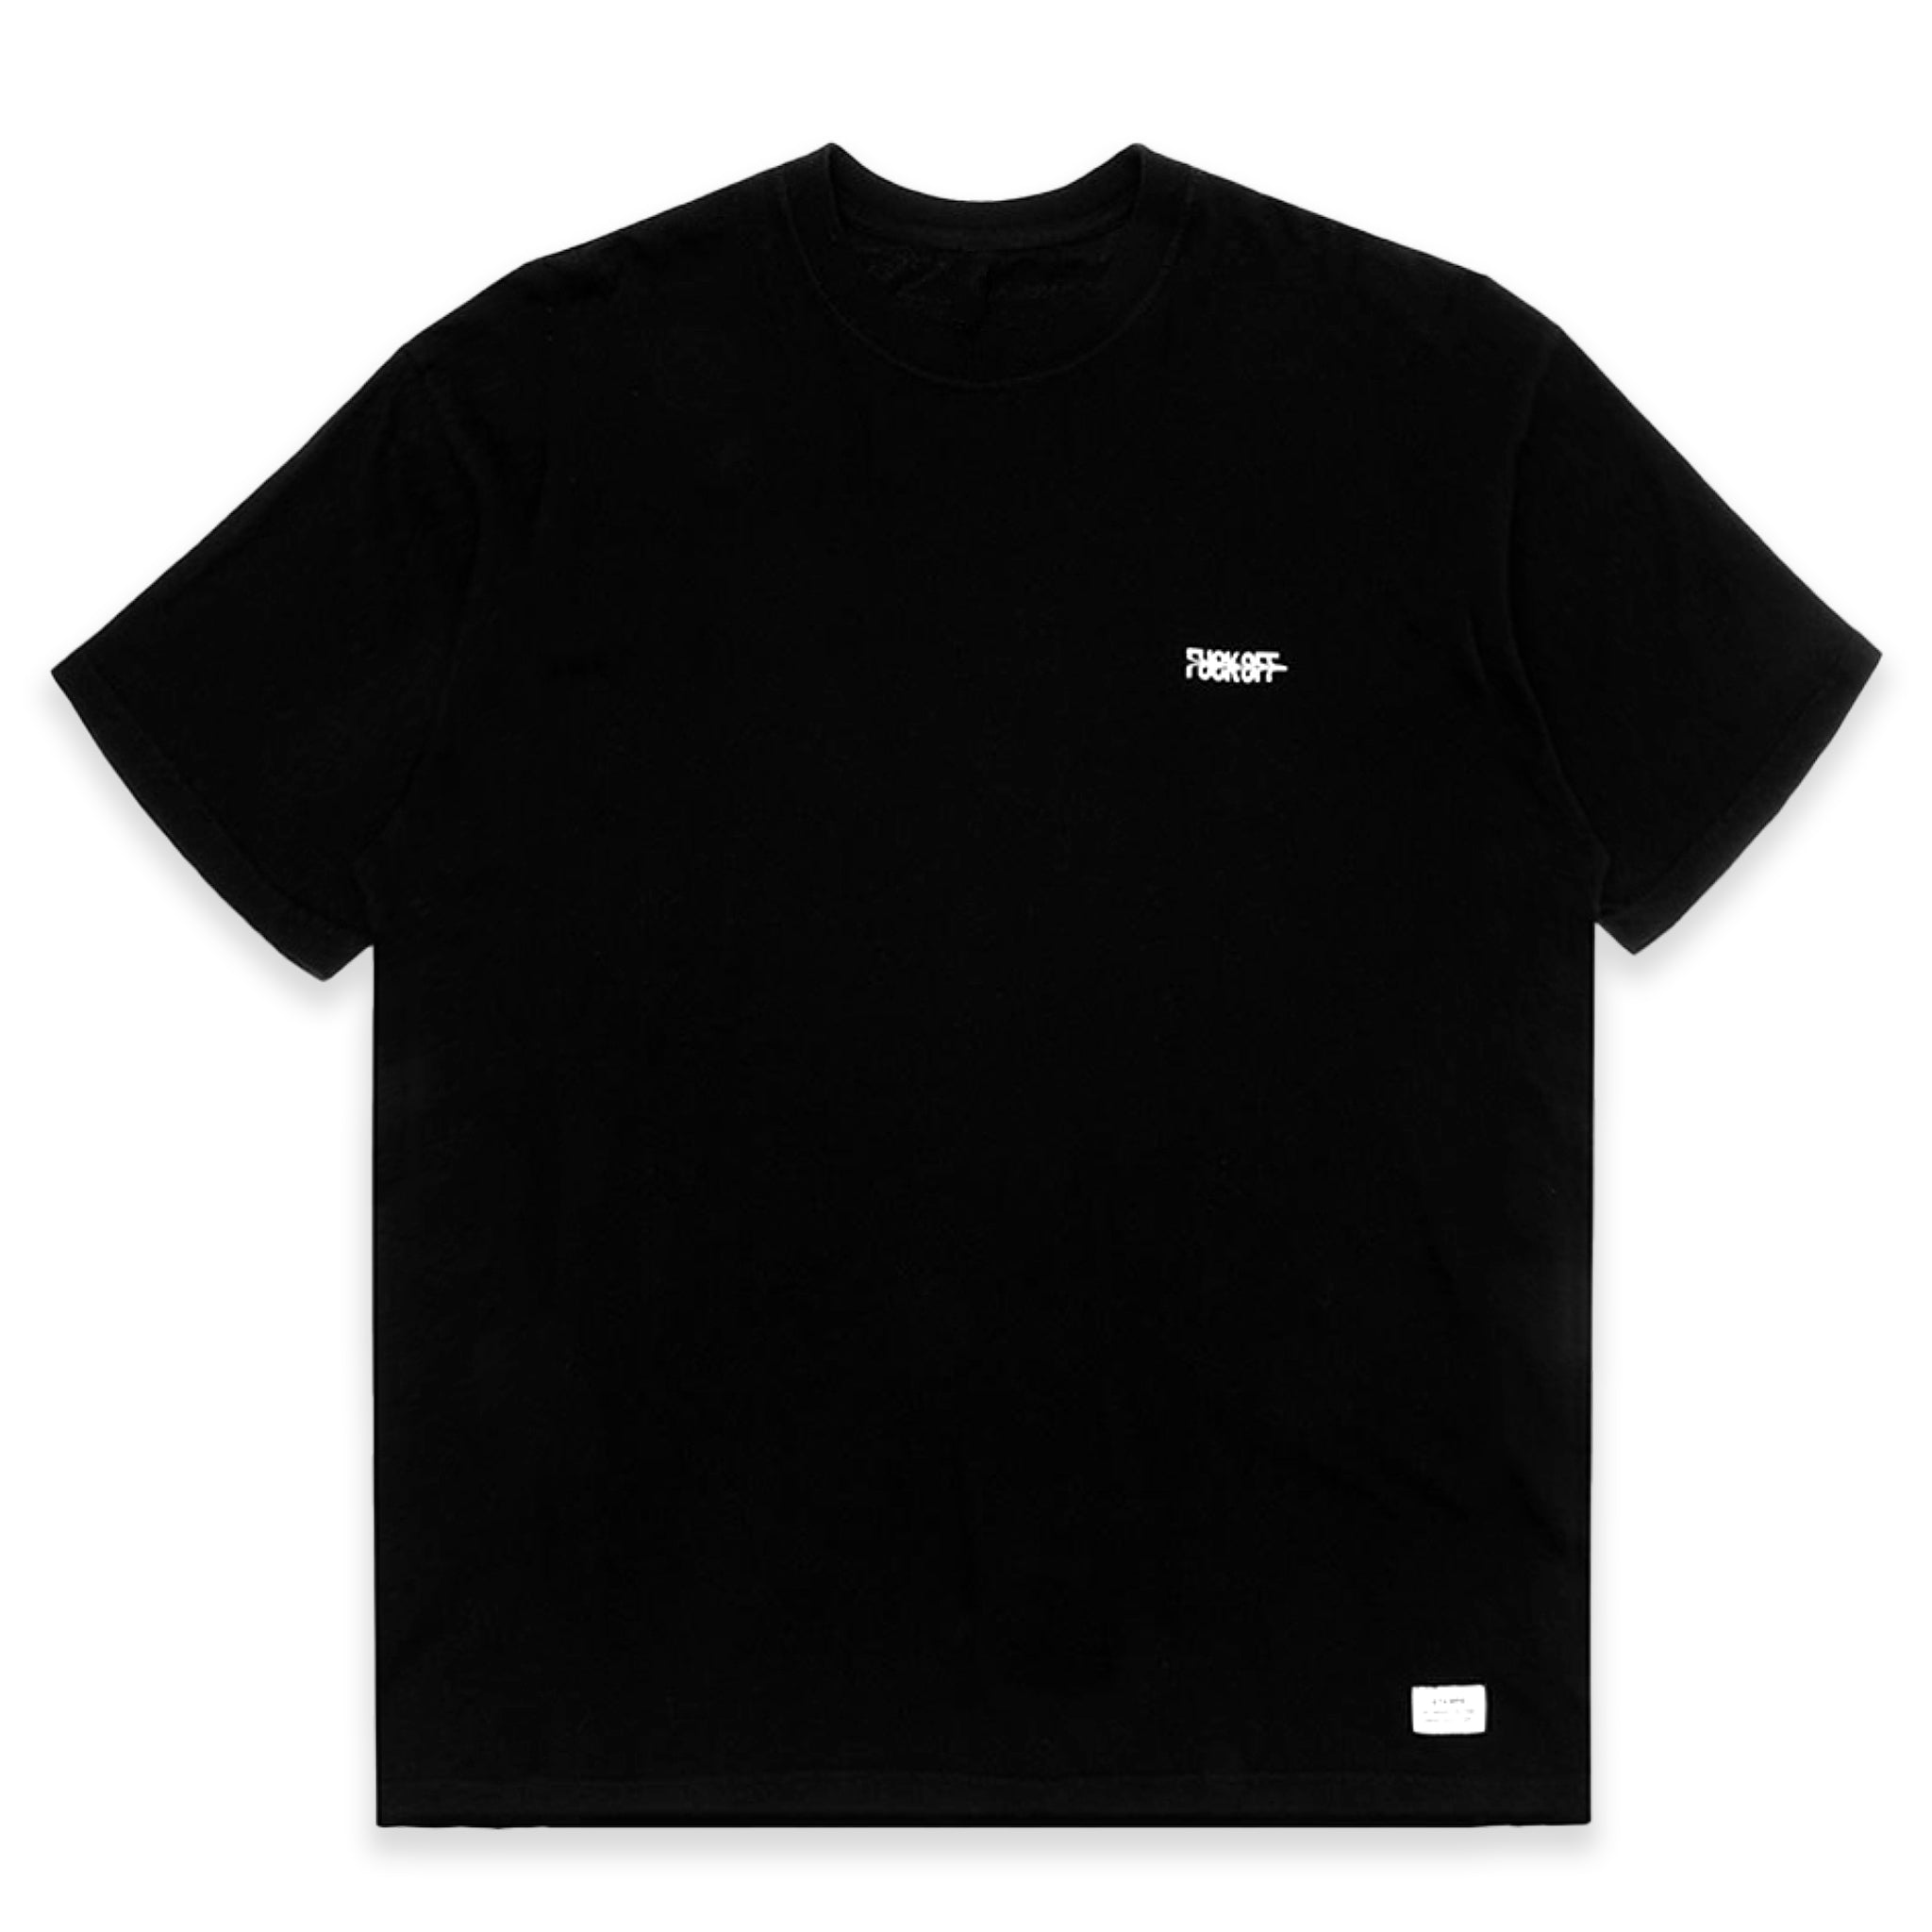 STAMPD F*** Off Tee Black